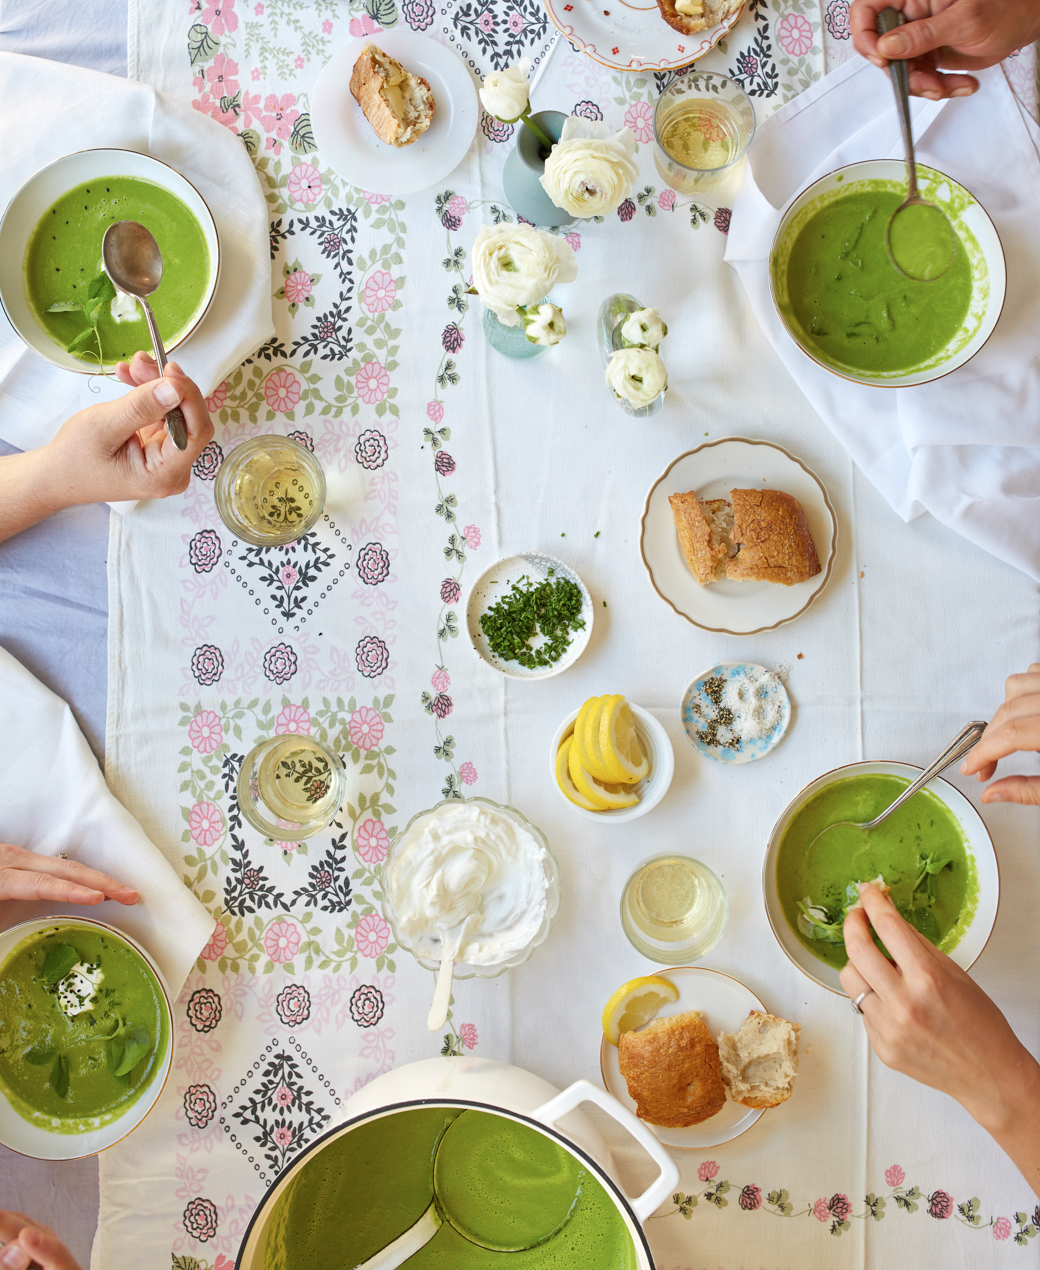 0001_Green Pea Soup with Chive Blossoms, Yogurt and Nigella